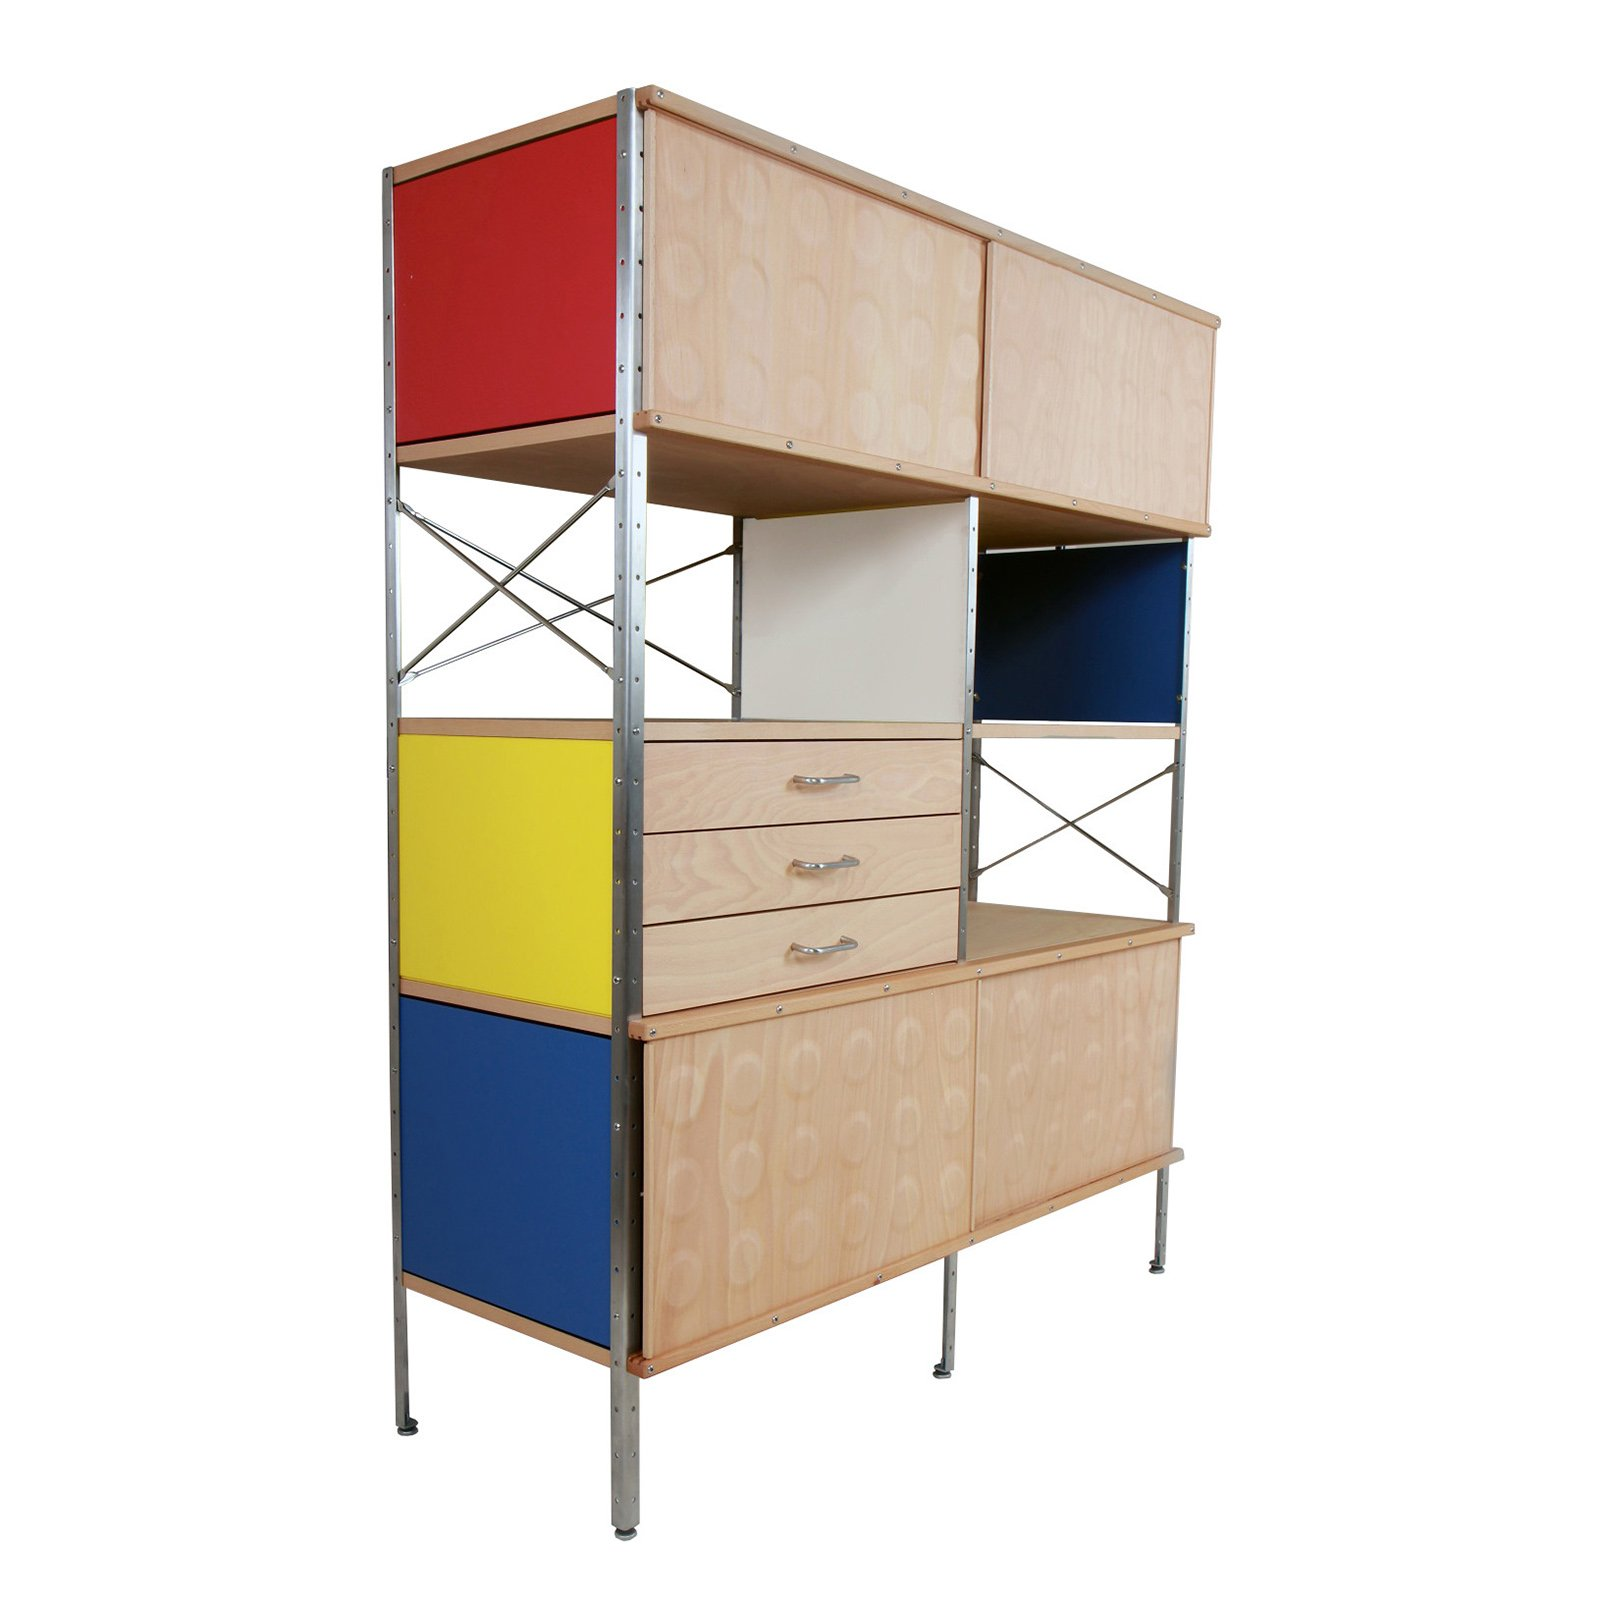 Eames Storage Unit Charles Ray Eames Mad For Modern # Muebles Wood Haedo